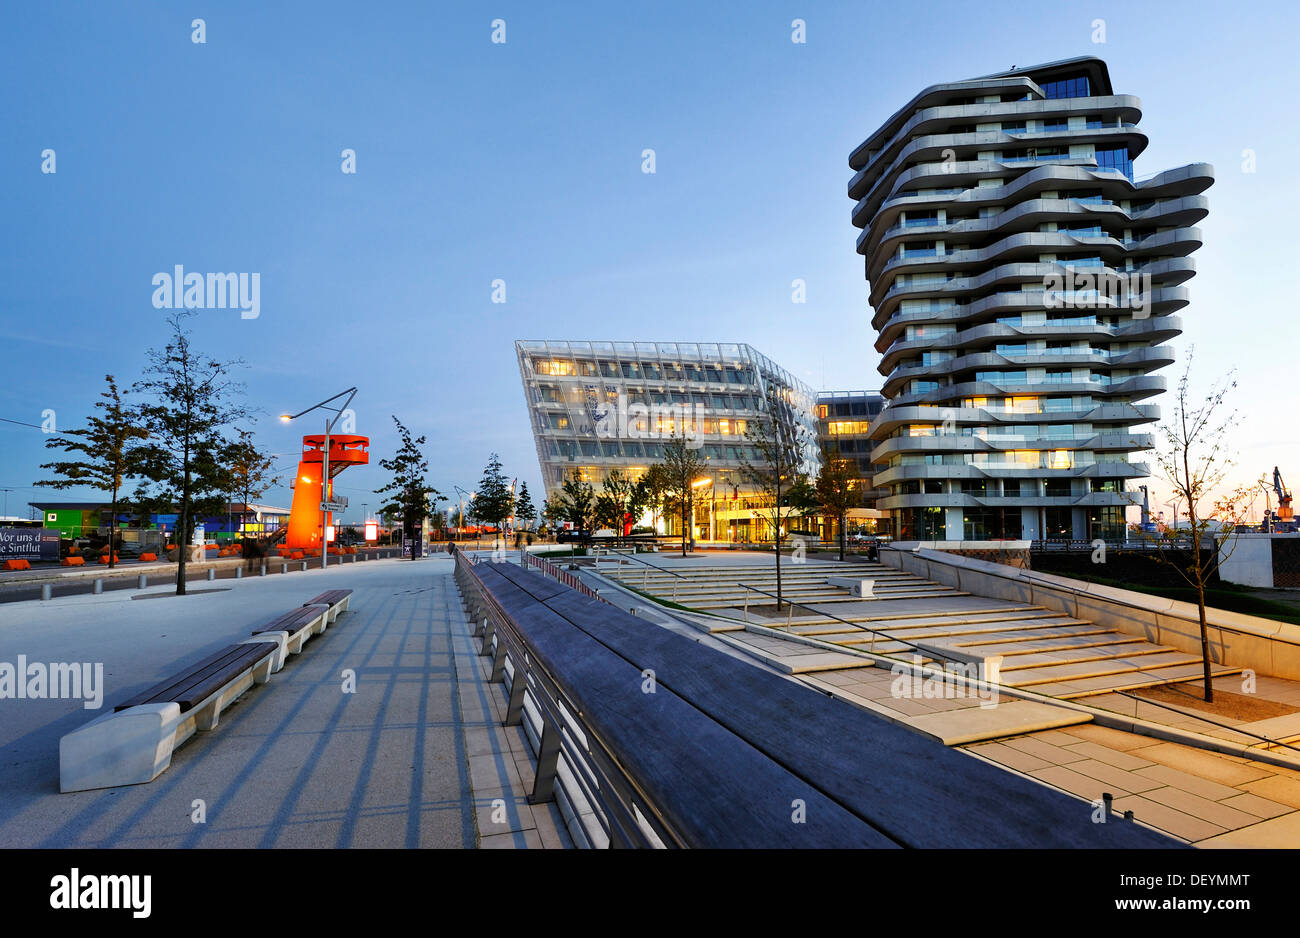 Marco-Polo-Tower and the Unilever headquarters on the Strandkai quay in the Hafencity district in Hamburg - Stock Image